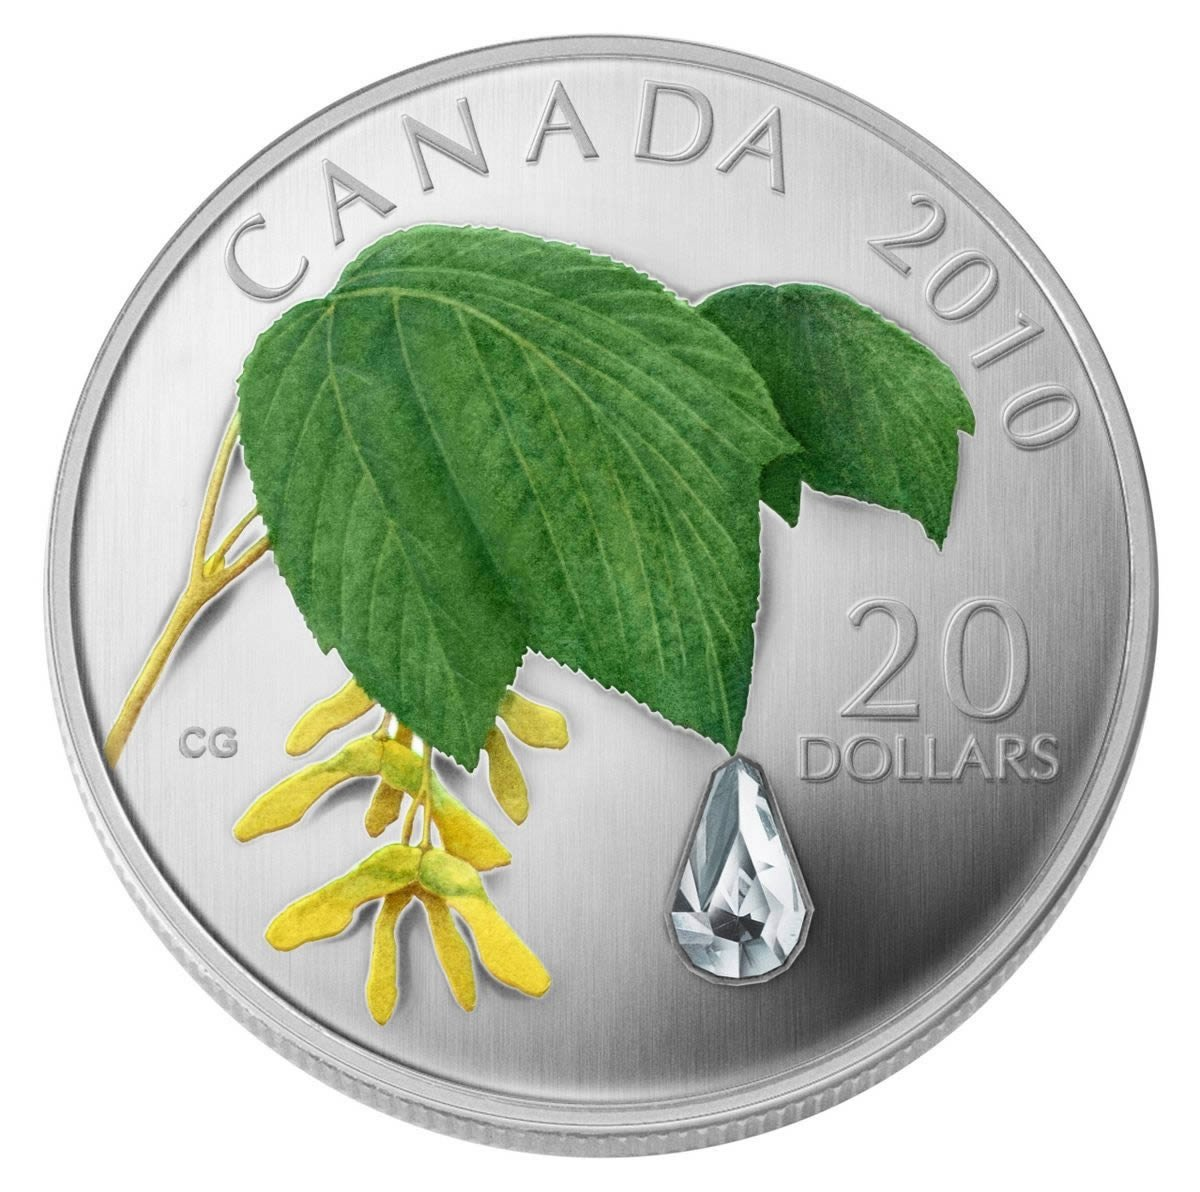 Canada 2011 $20 Fine Silver Commemorative Maple Leaf Coin $20 for $20 SCARCE